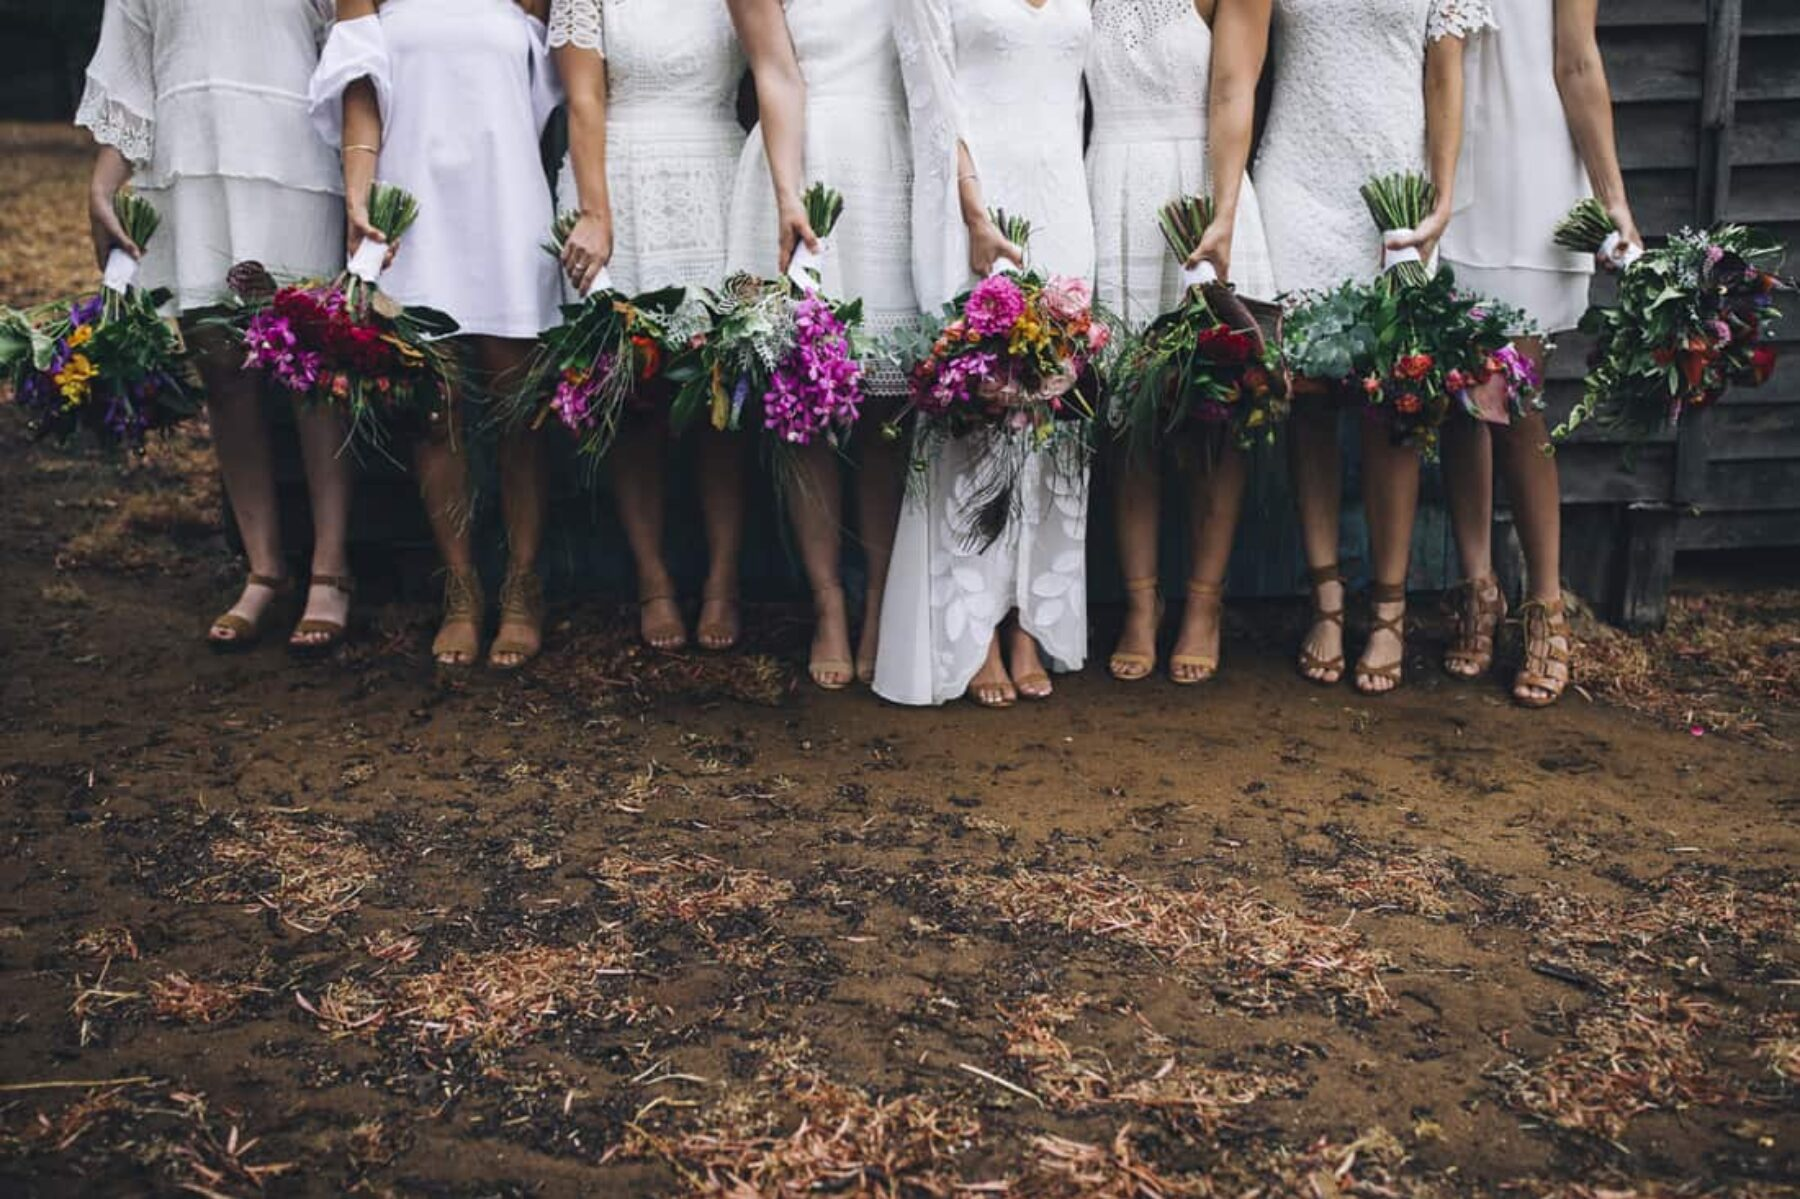 boho bridesmaids in mixed white dresses with vibrant bouquets